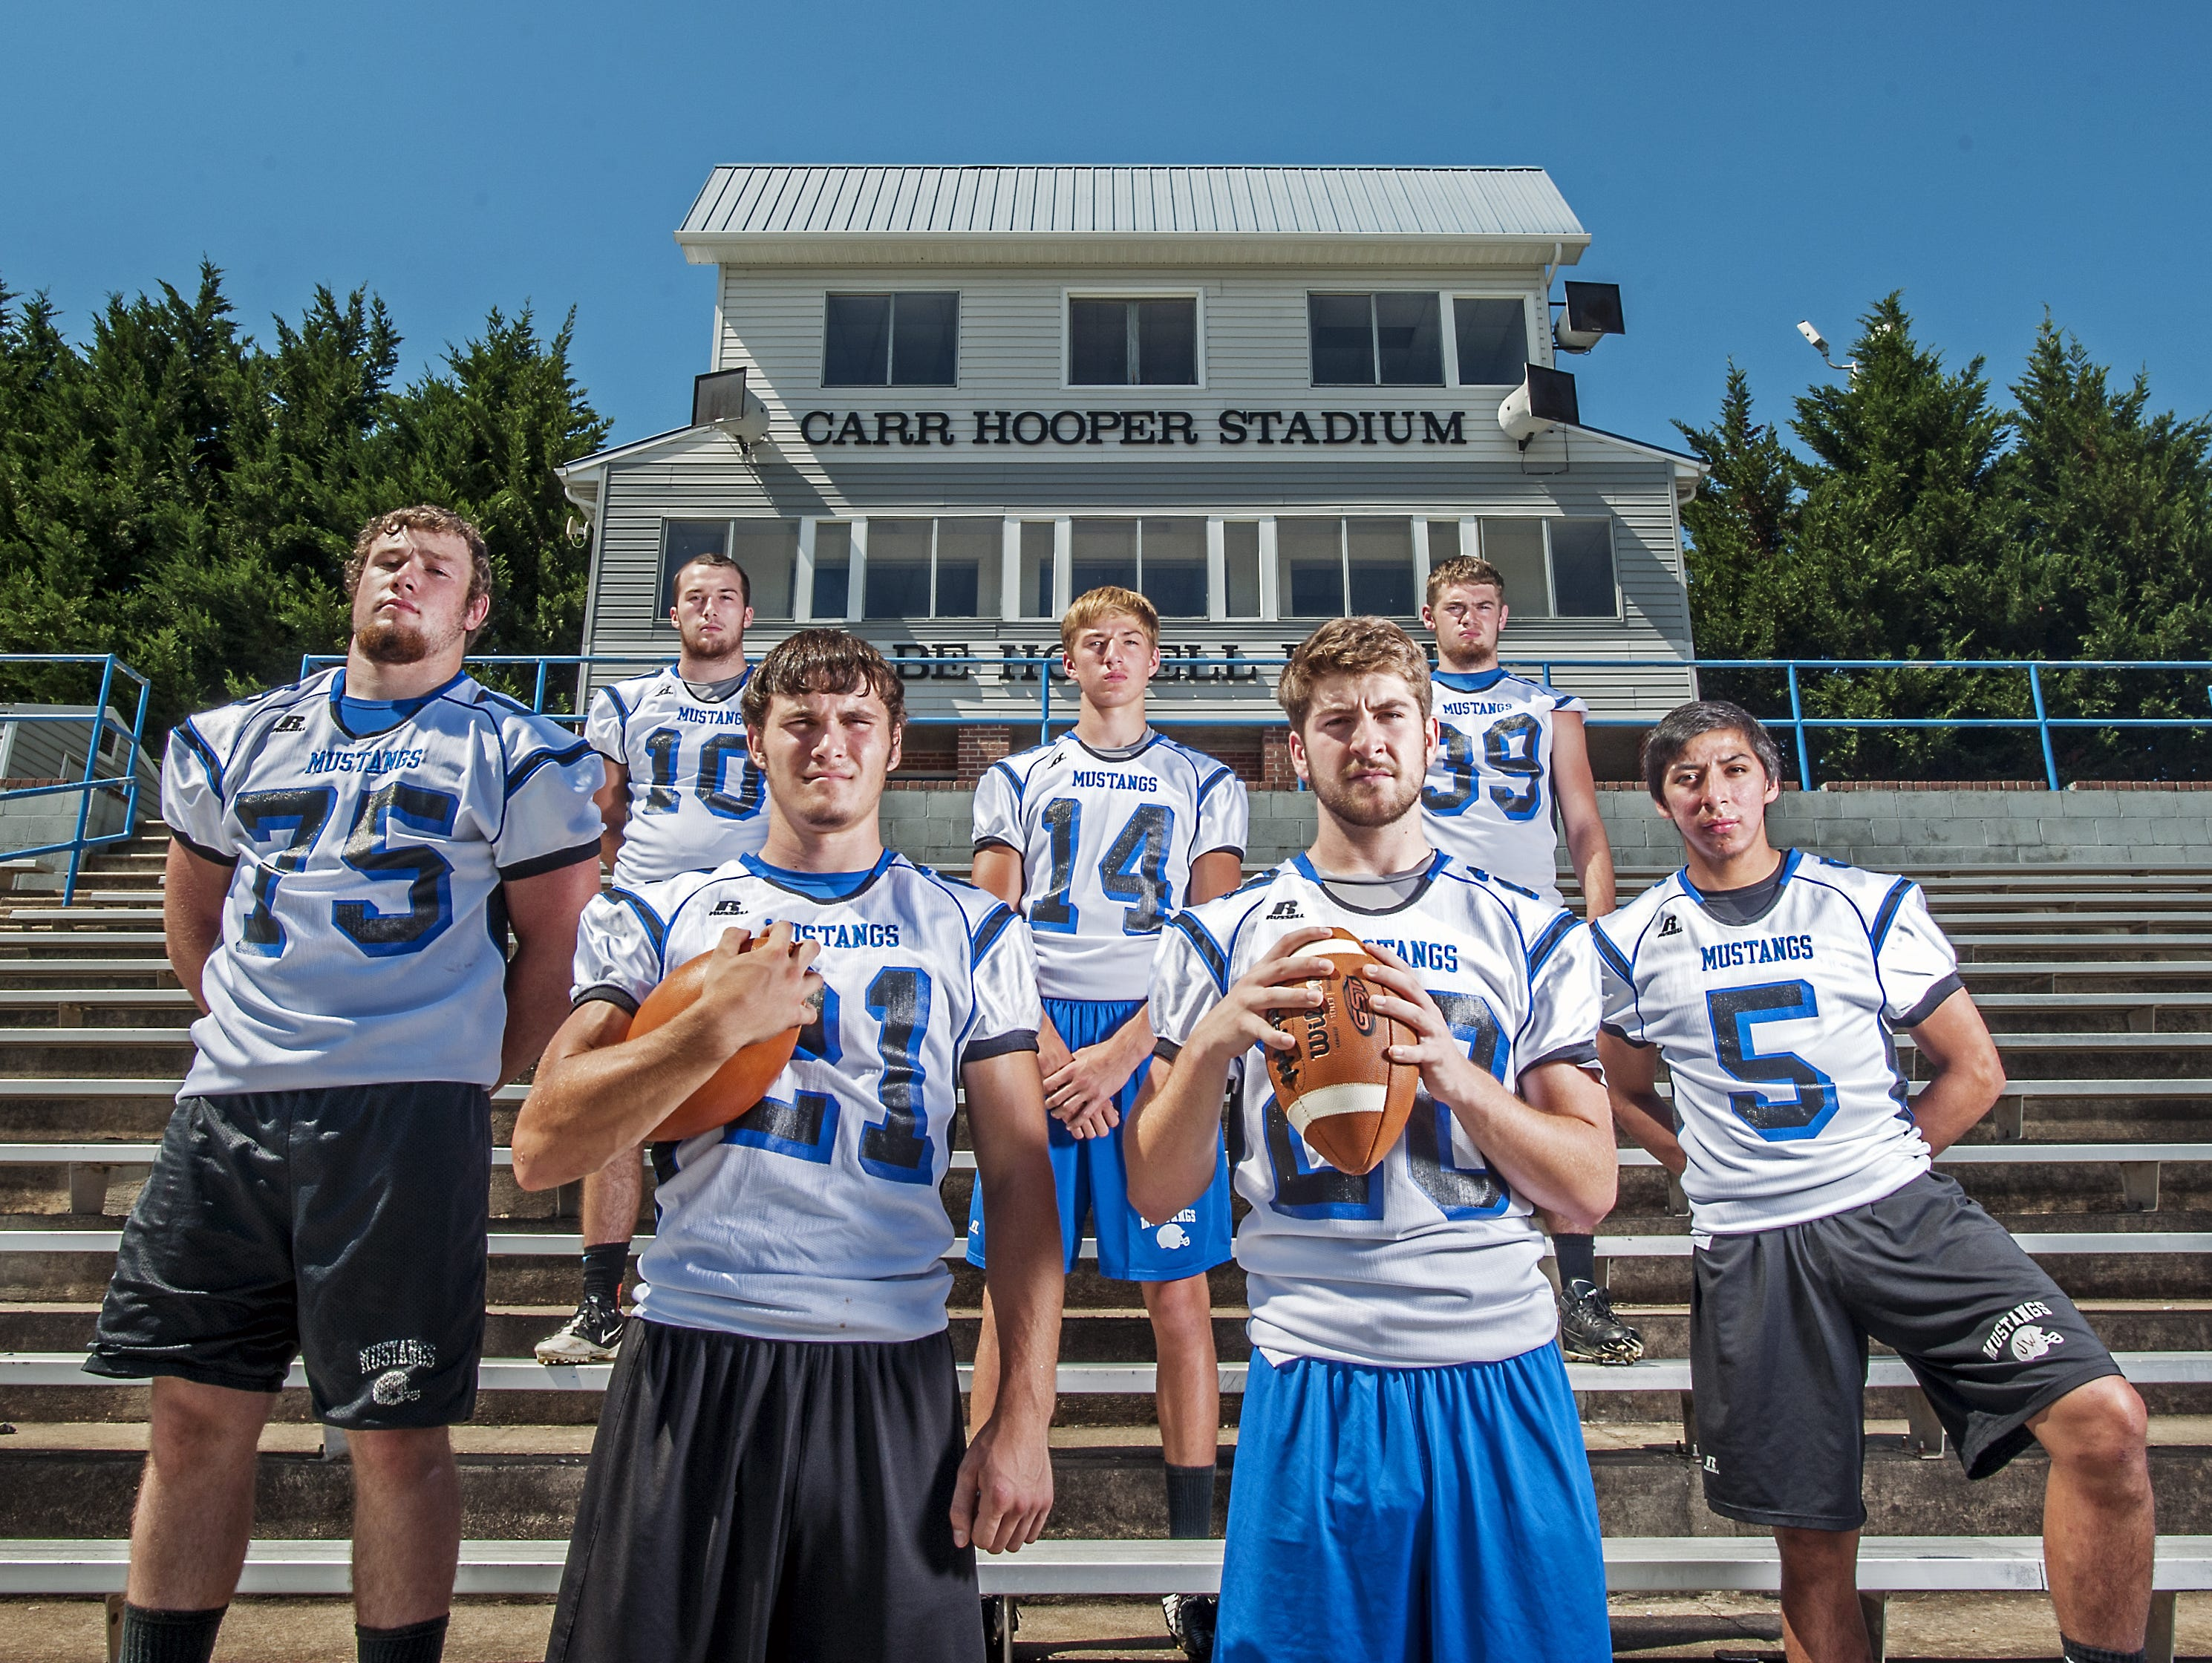 Smoky Mountain's football team went 5-7 this season. Pictured here are Zack Beck, Connor Moore, Carson Shuler, Jacob Gass, Nick Napert, Chase Fisher and Jayce Wolfe.